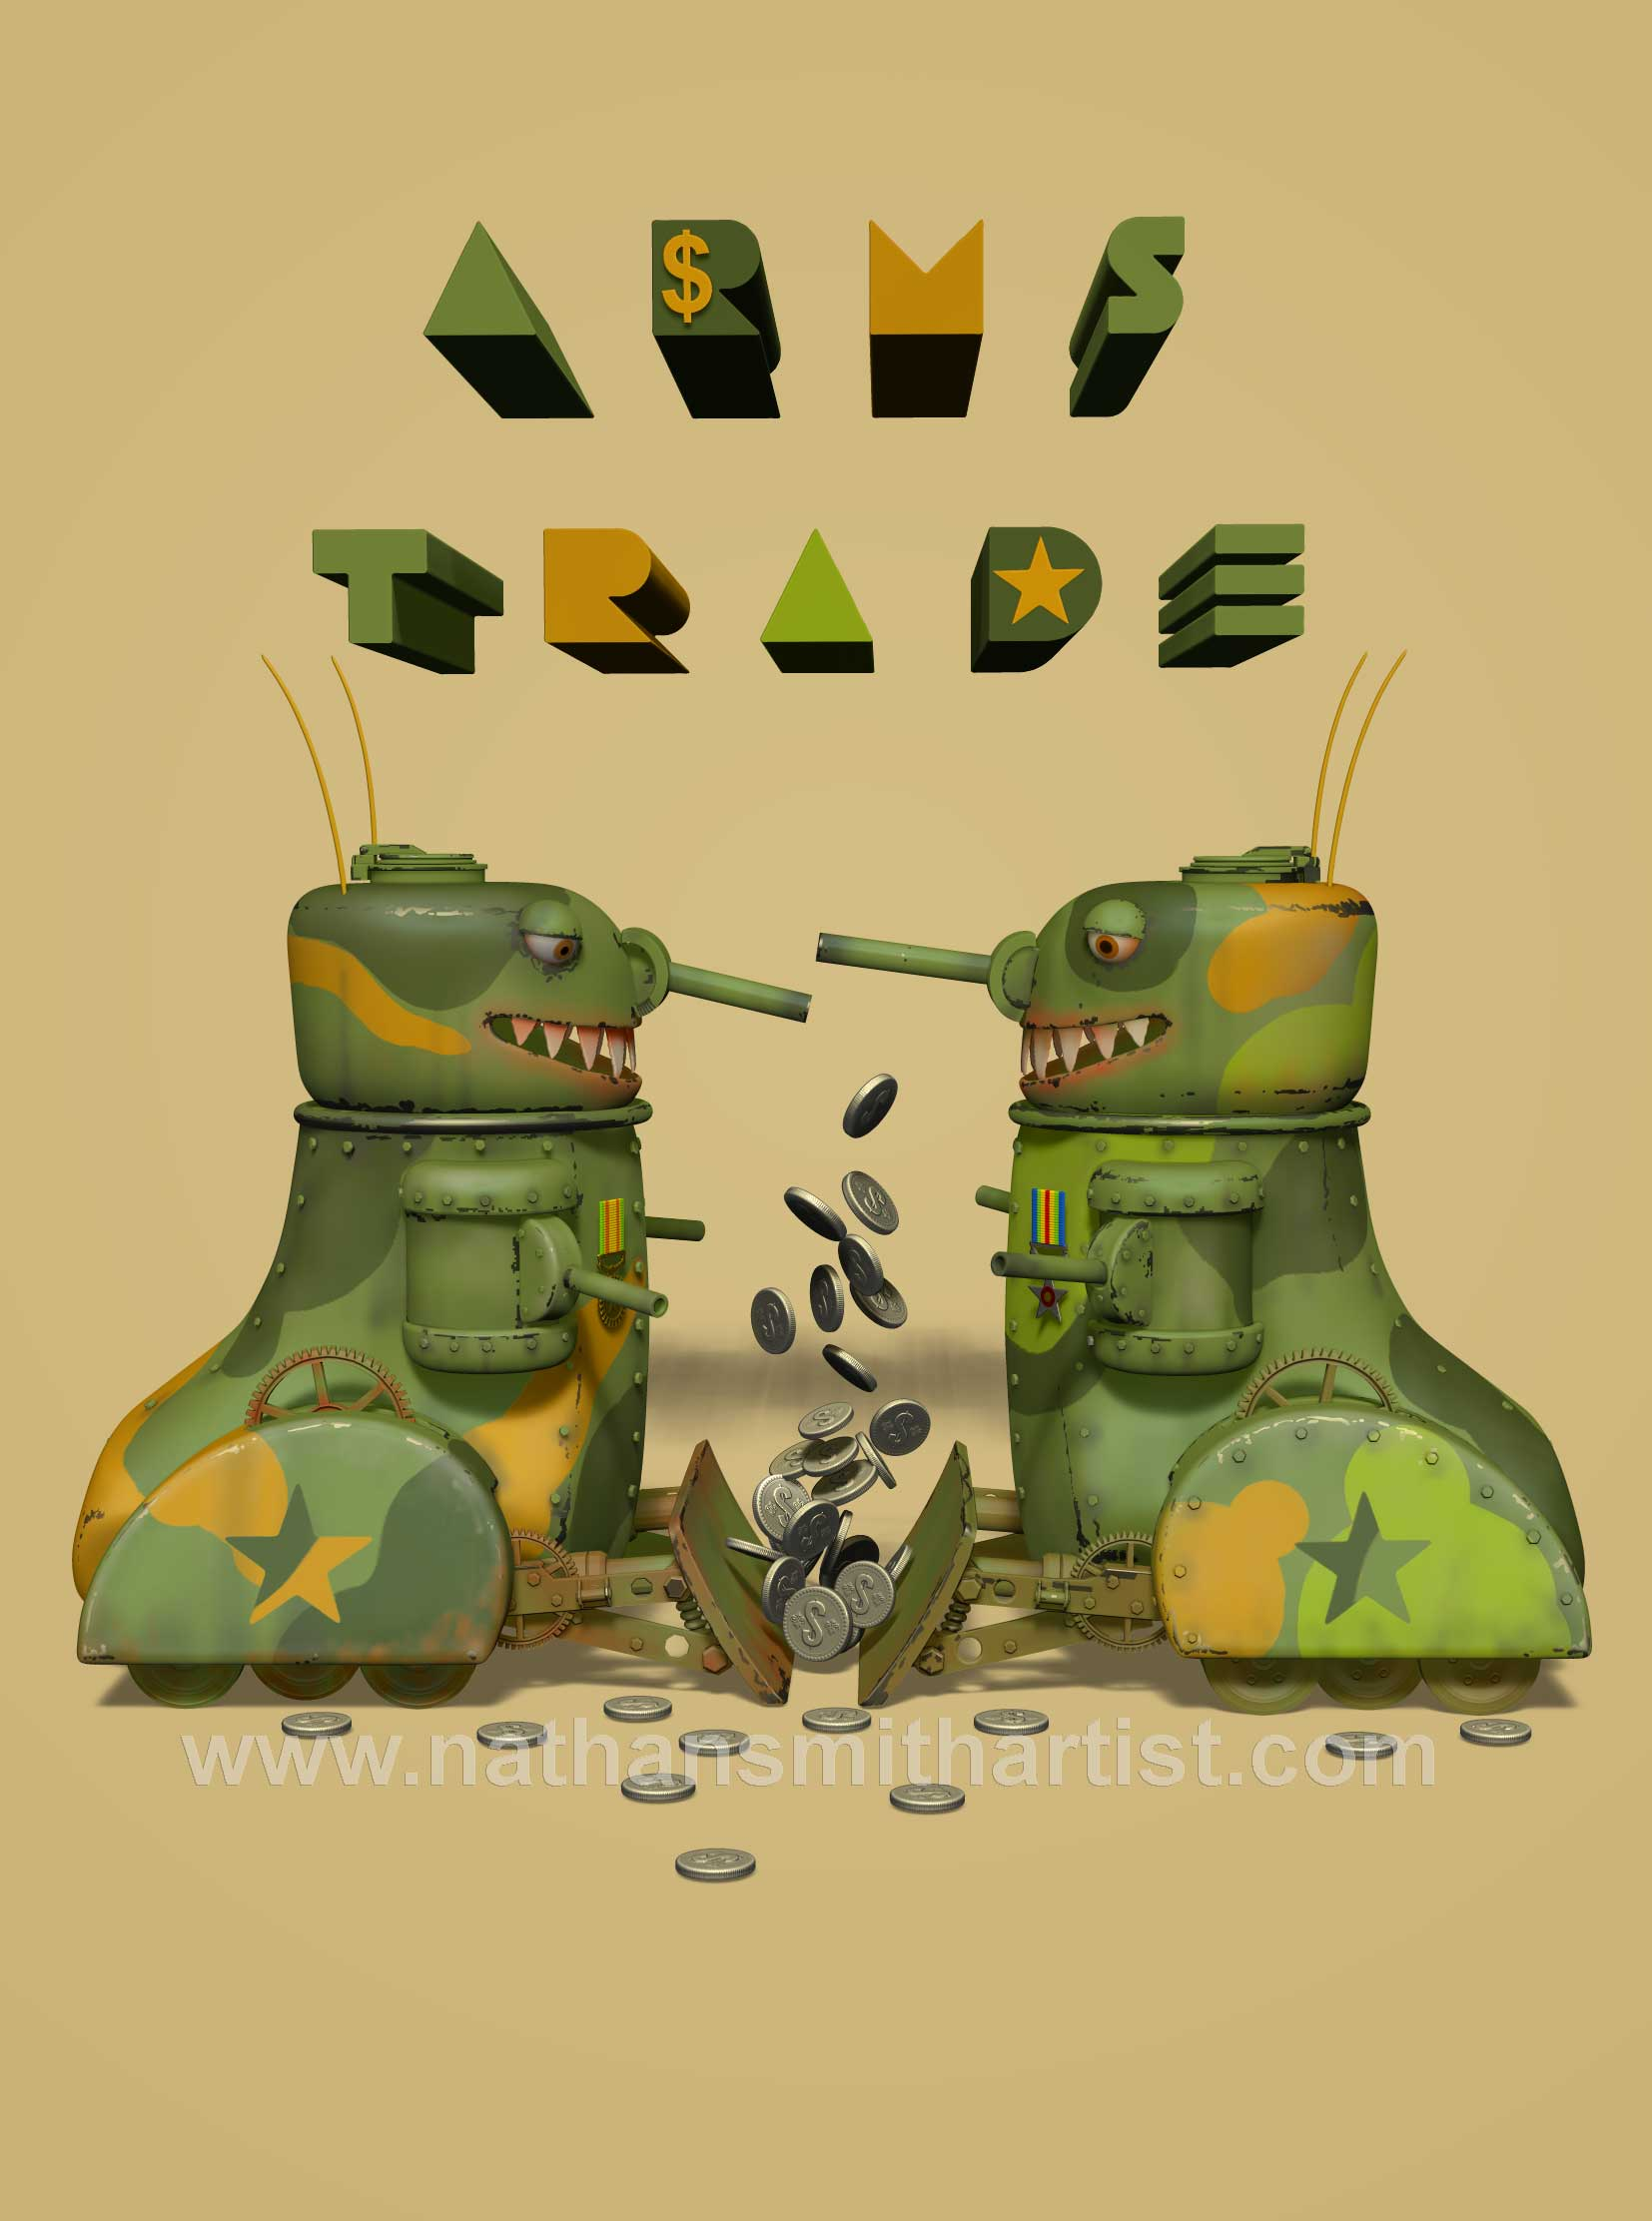 Arms trade,tanks,money